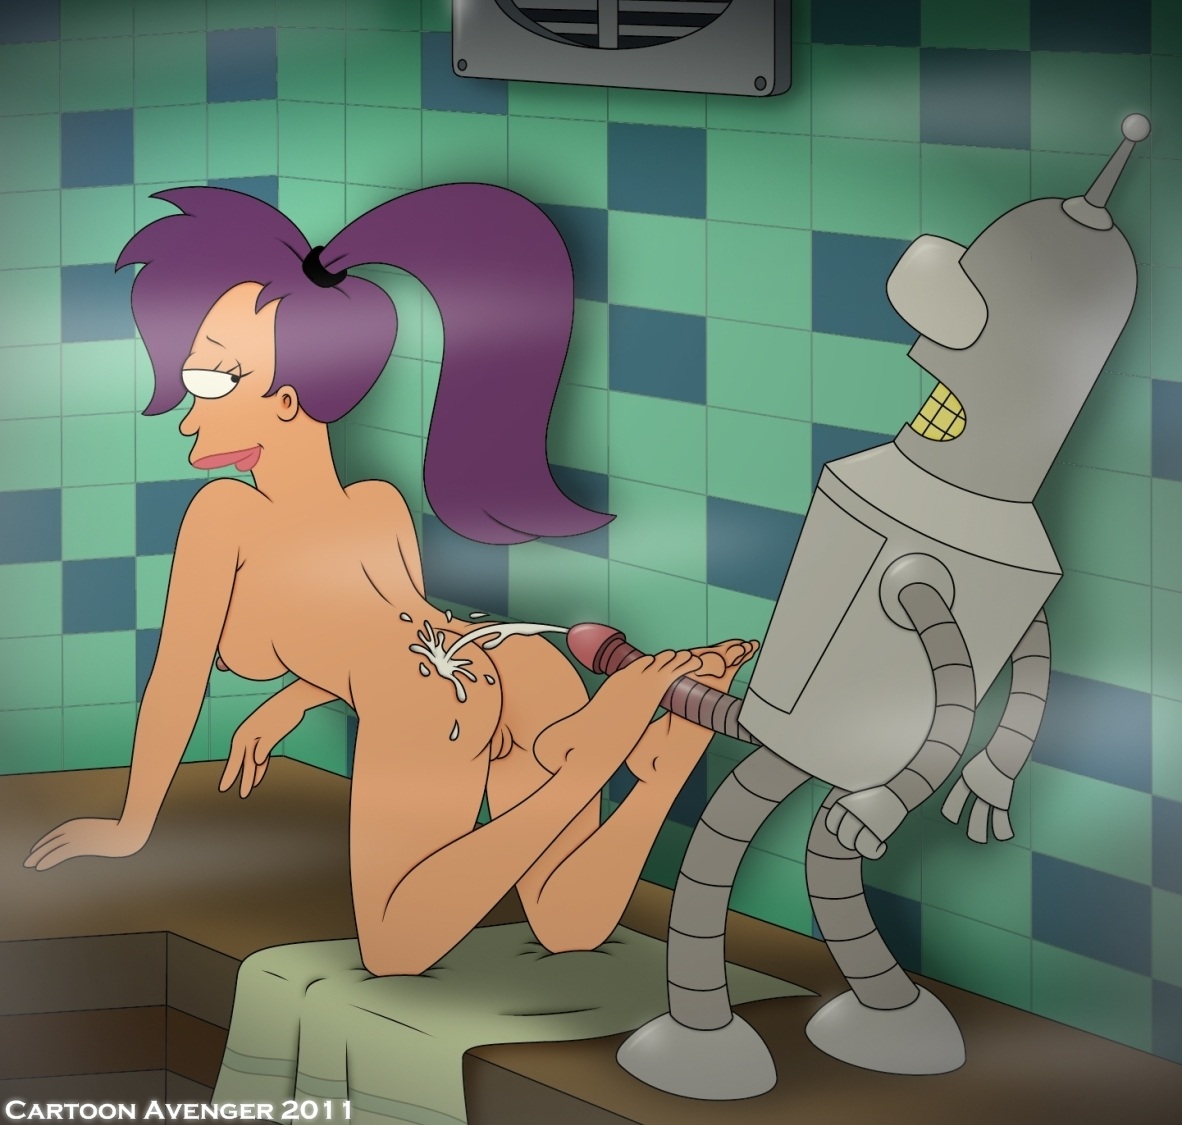 Boobs and nude turanga leela